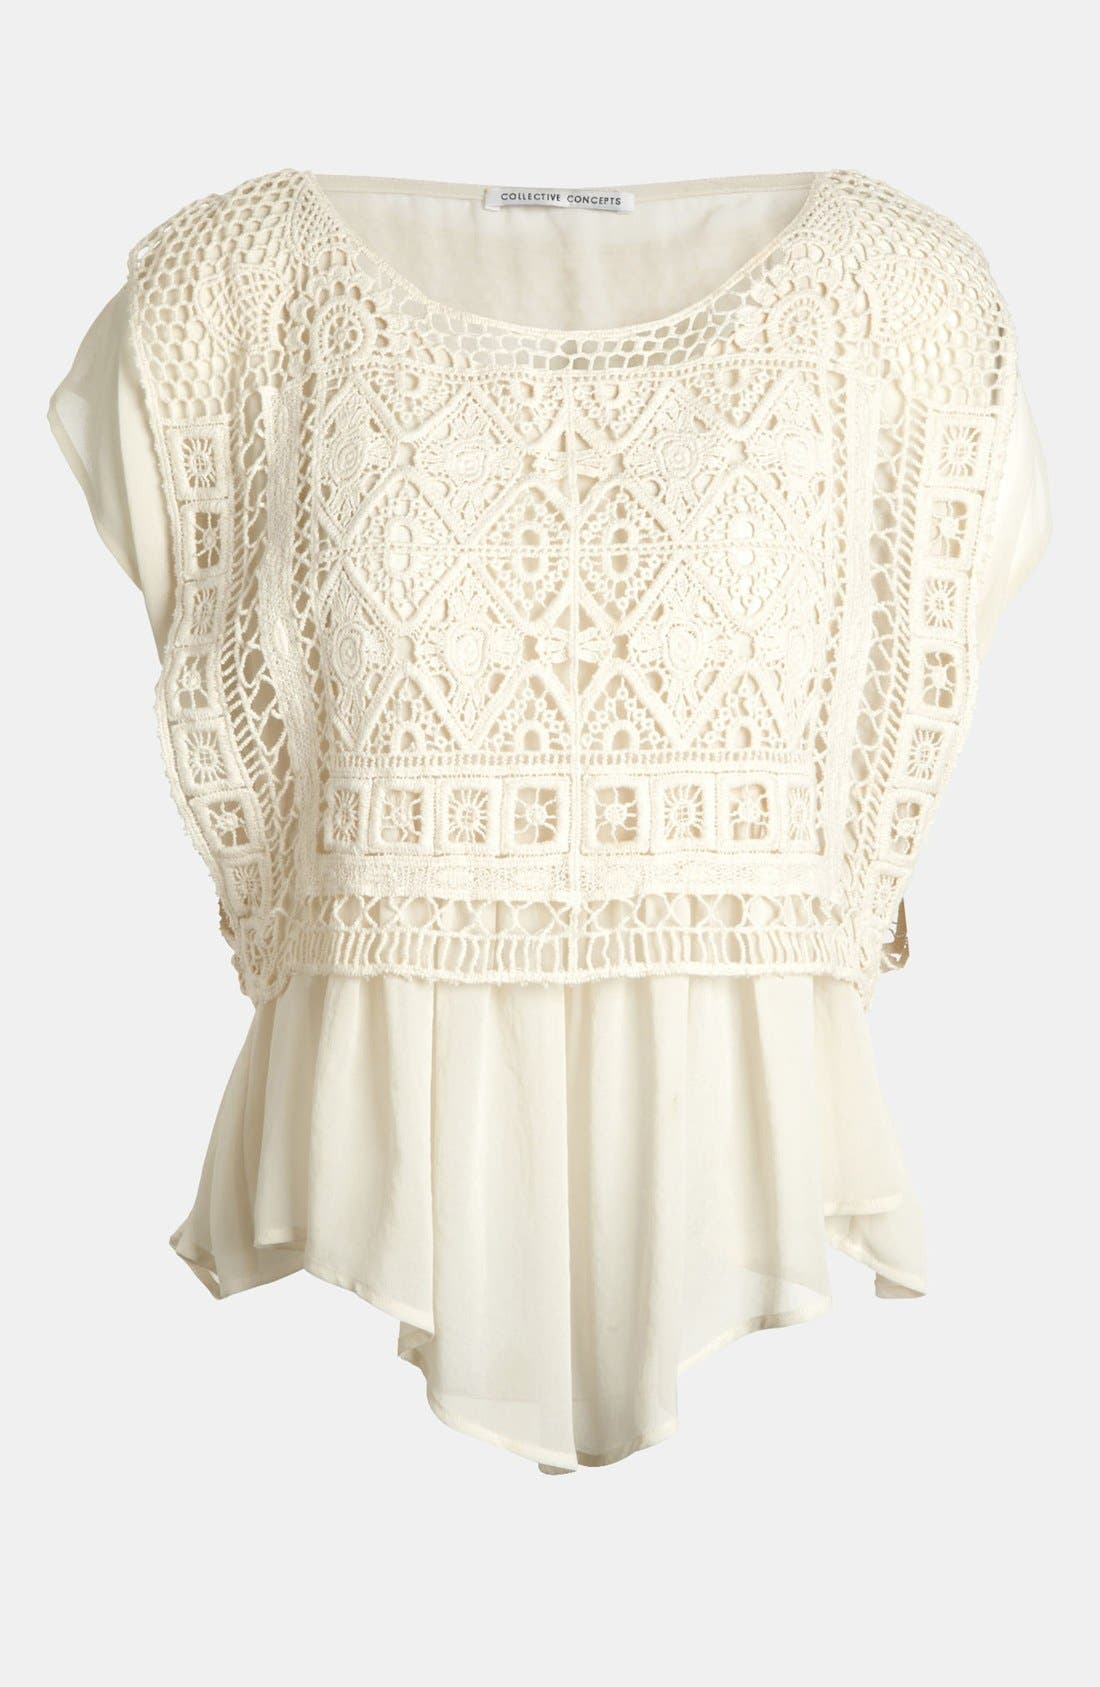 Alternate Image 1 Selected - Creative Commune Crochet Top